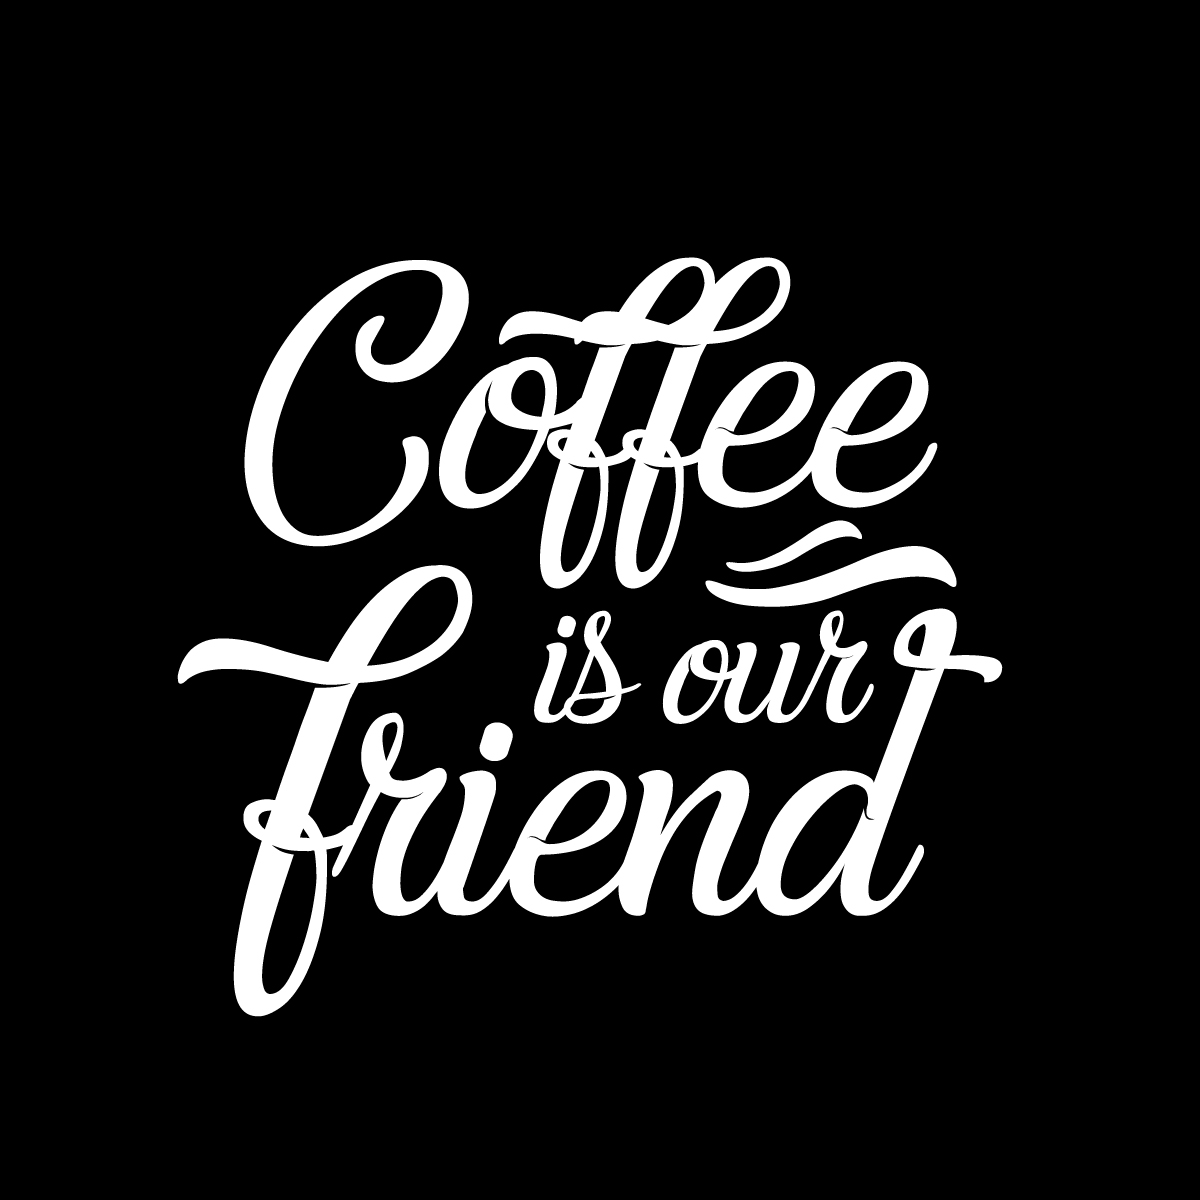 Coffee is our friend